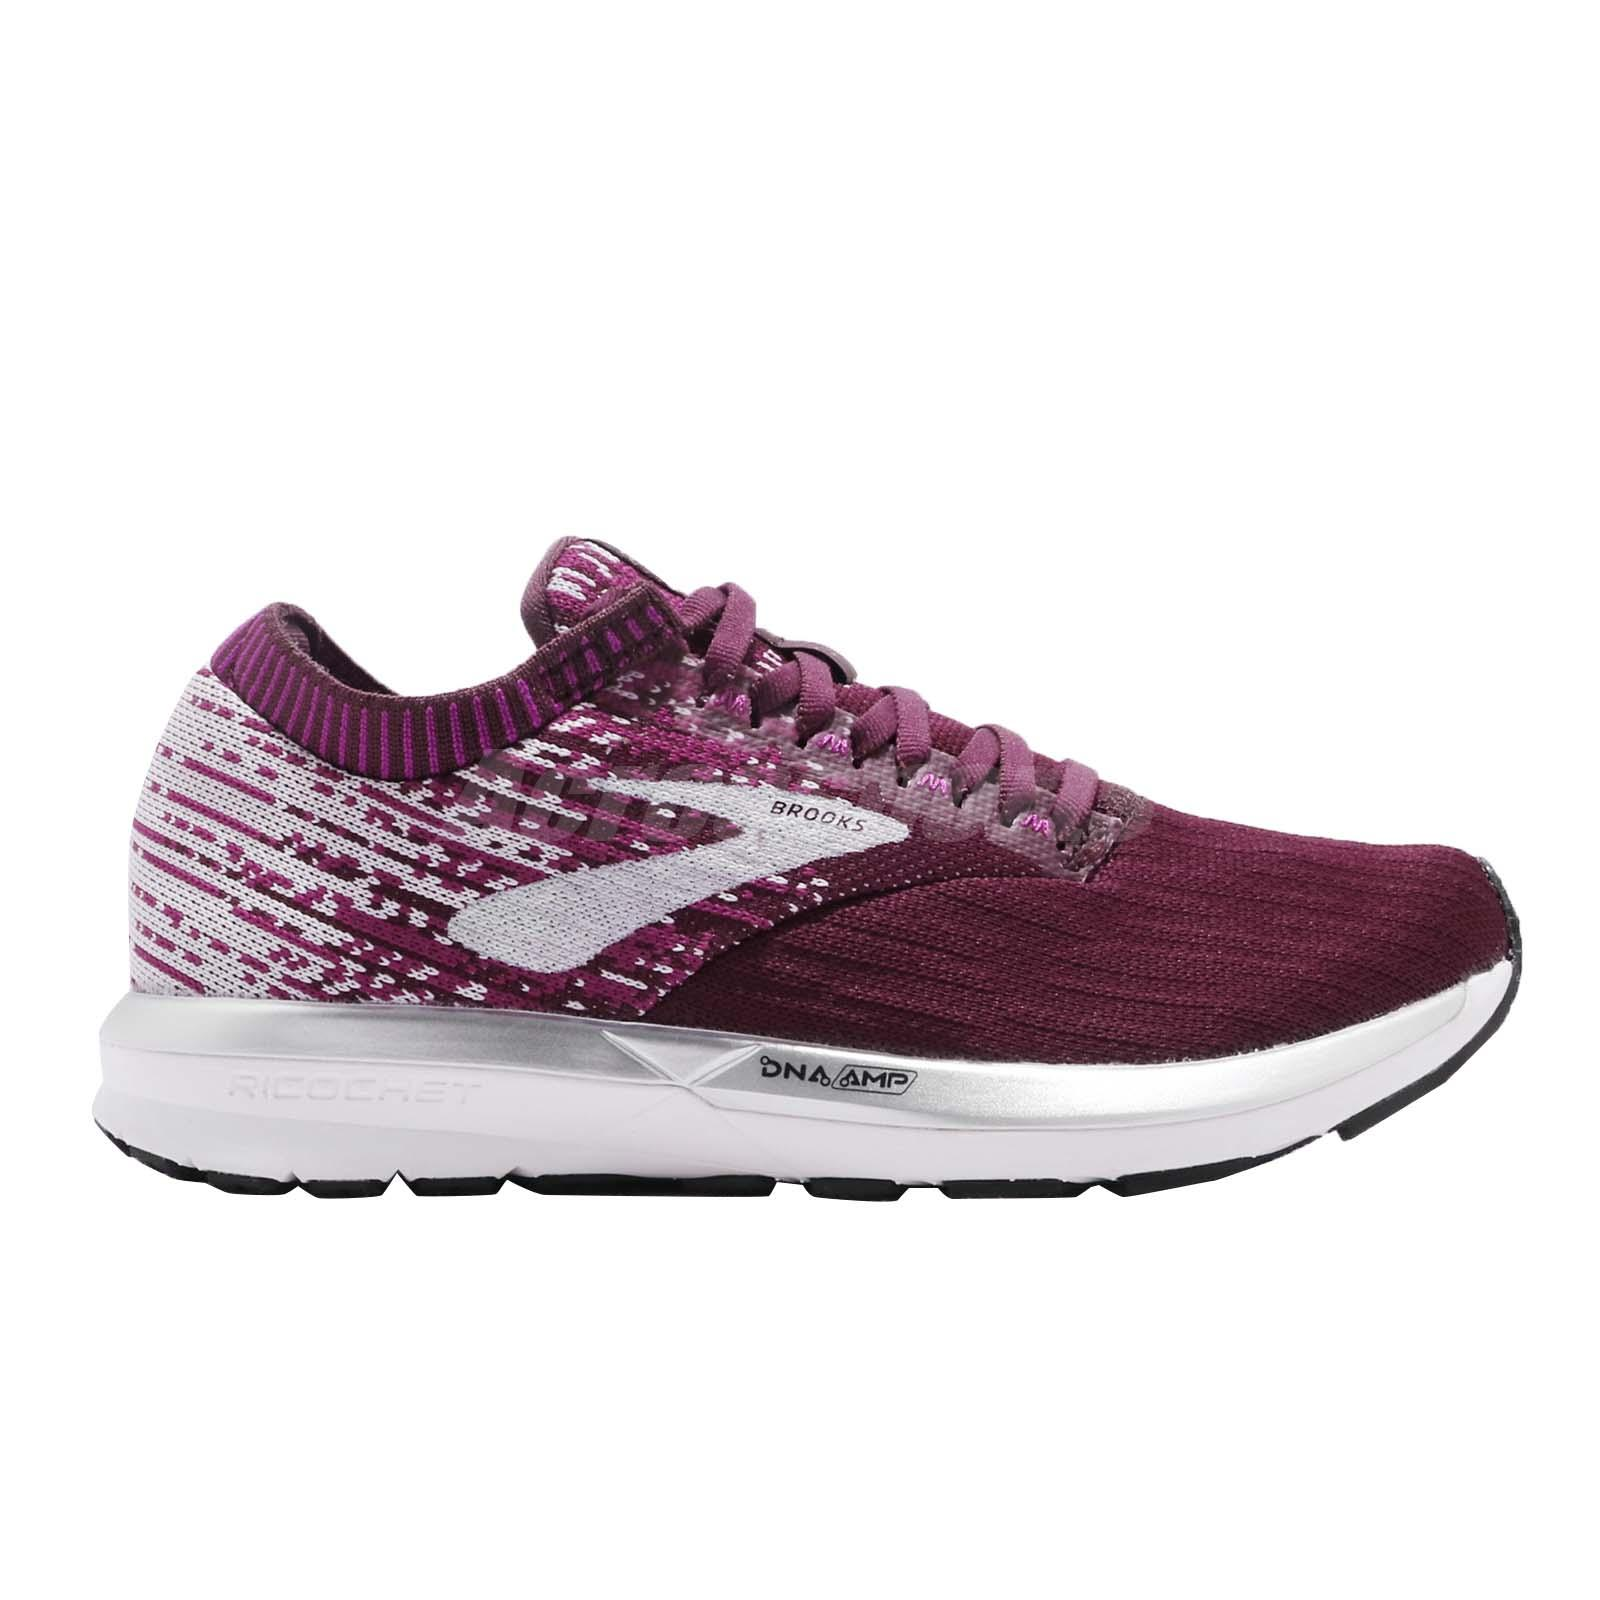 8987c1fec483b Brooks Ricochet Fig Wild Aster Grey Women Running Shoes Sneakers ...